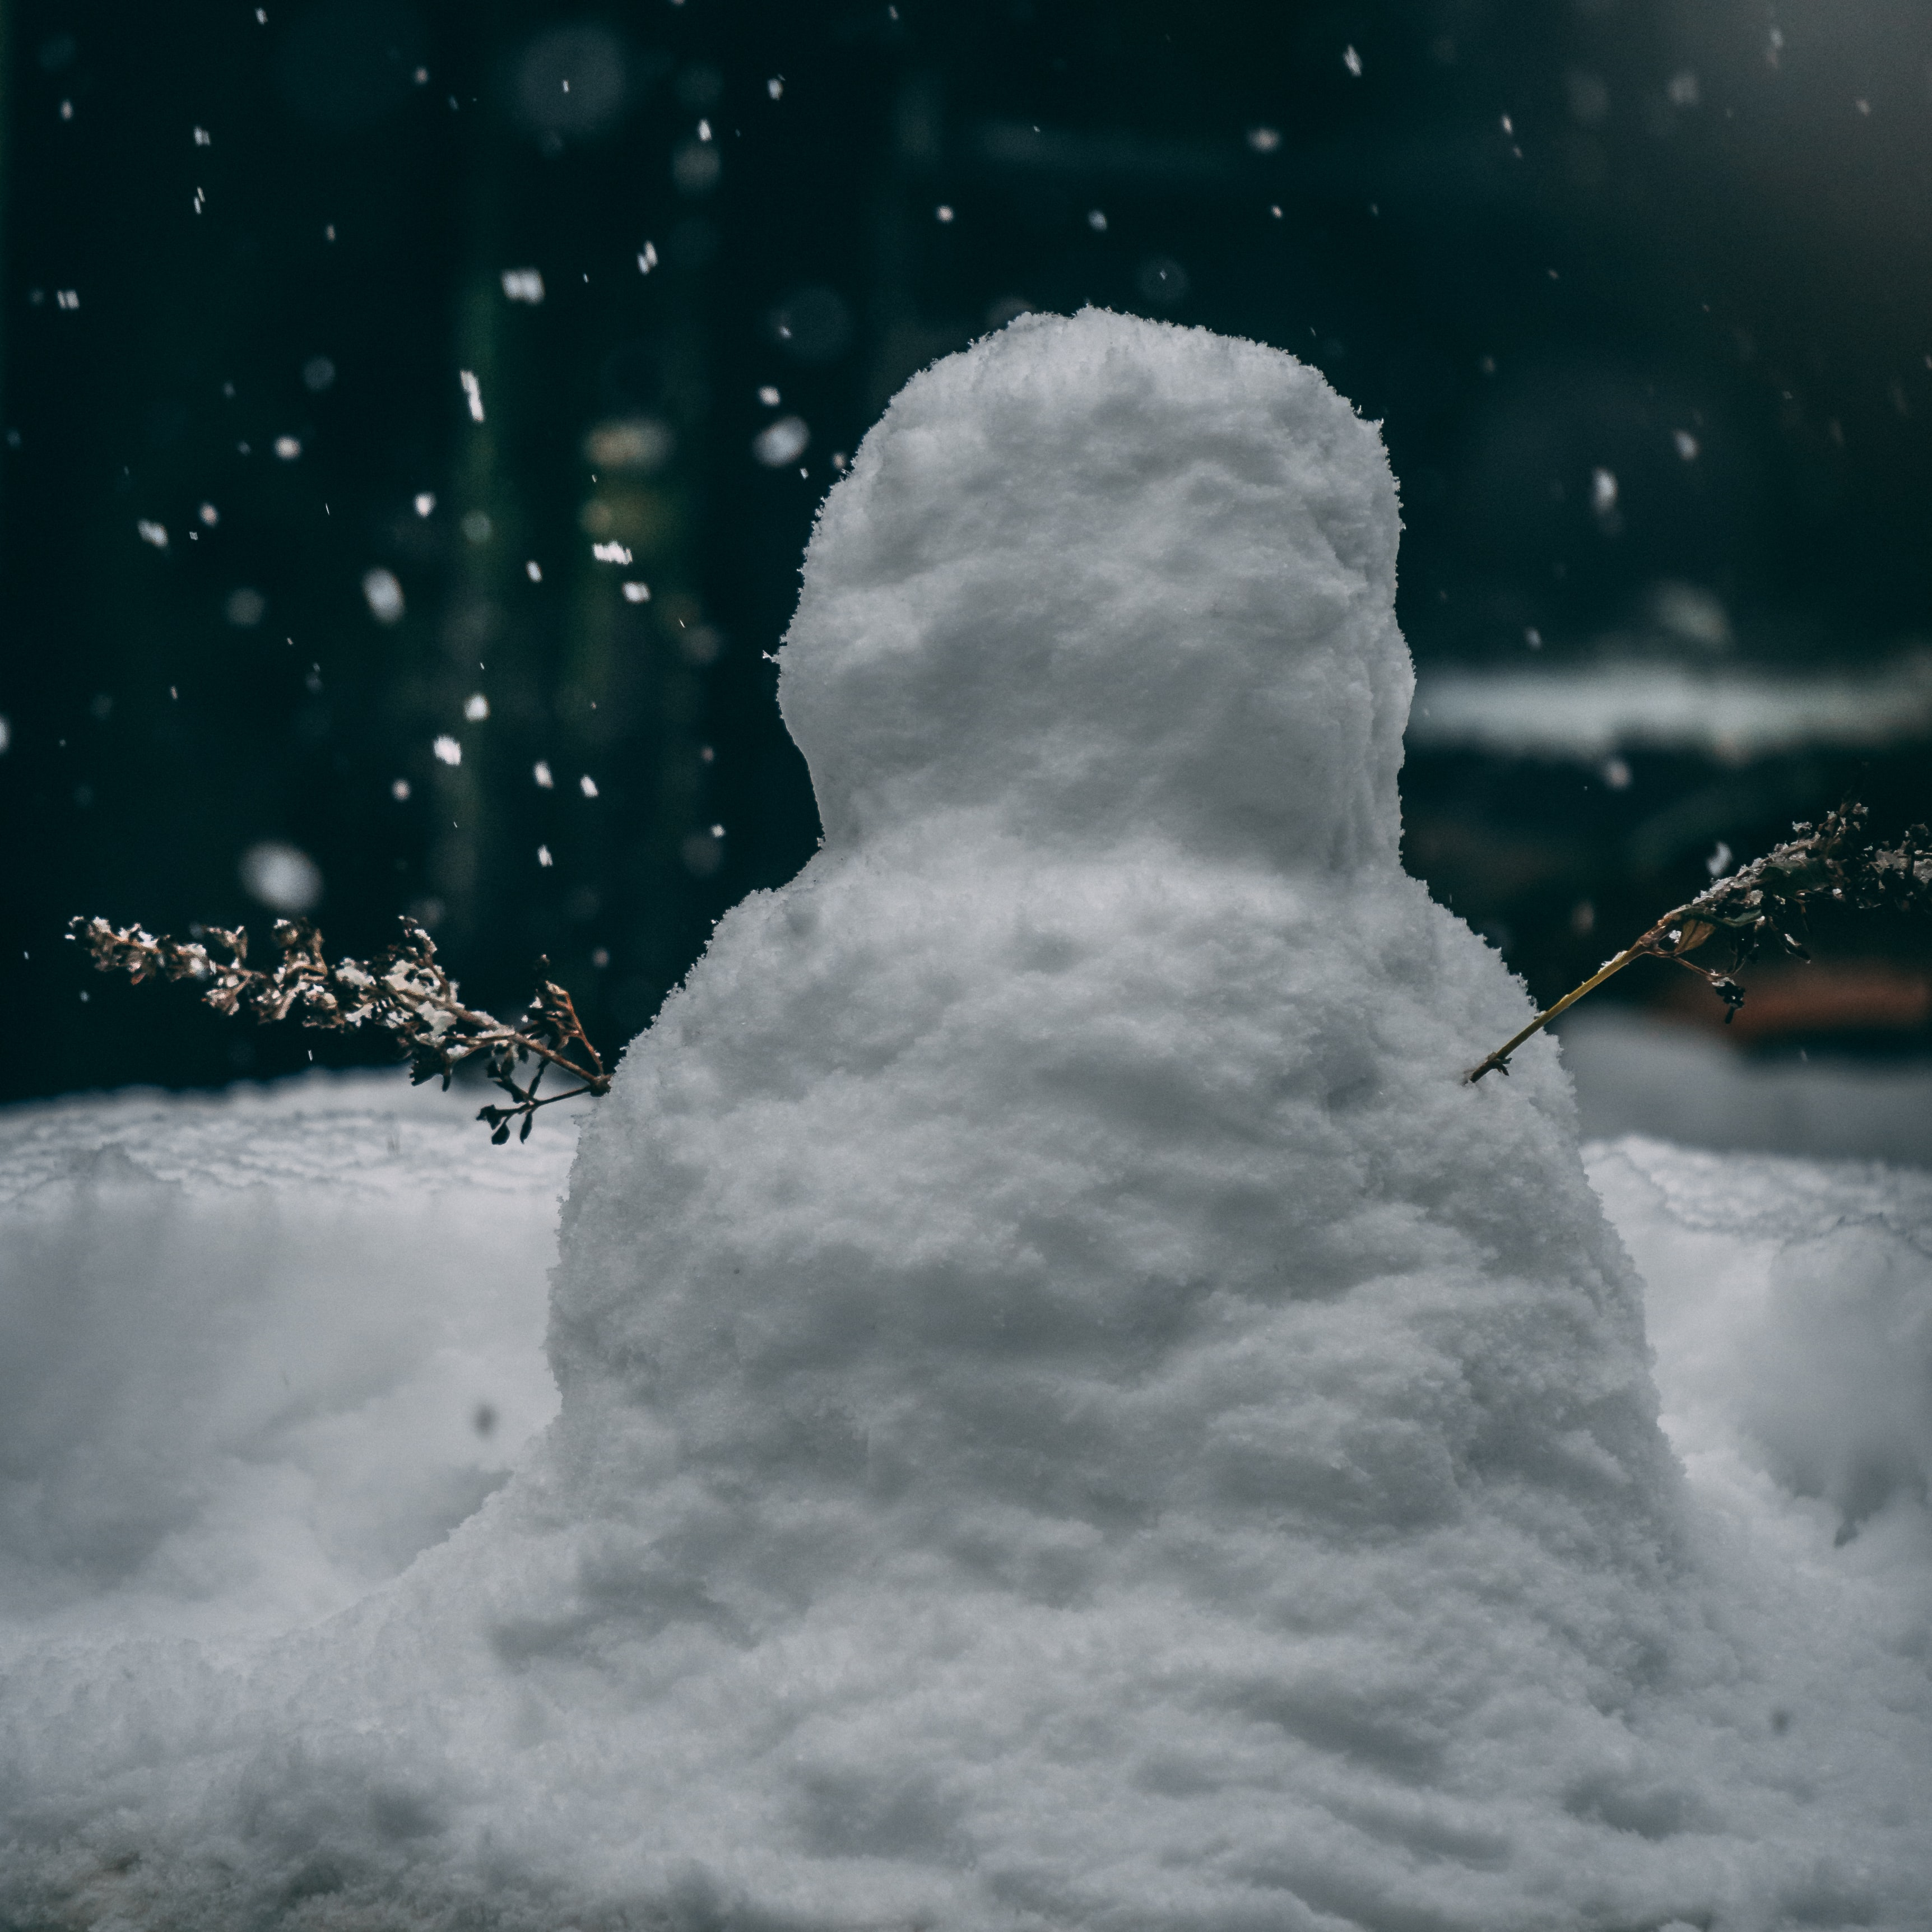 Snowman outdoor during daytime close-up photography